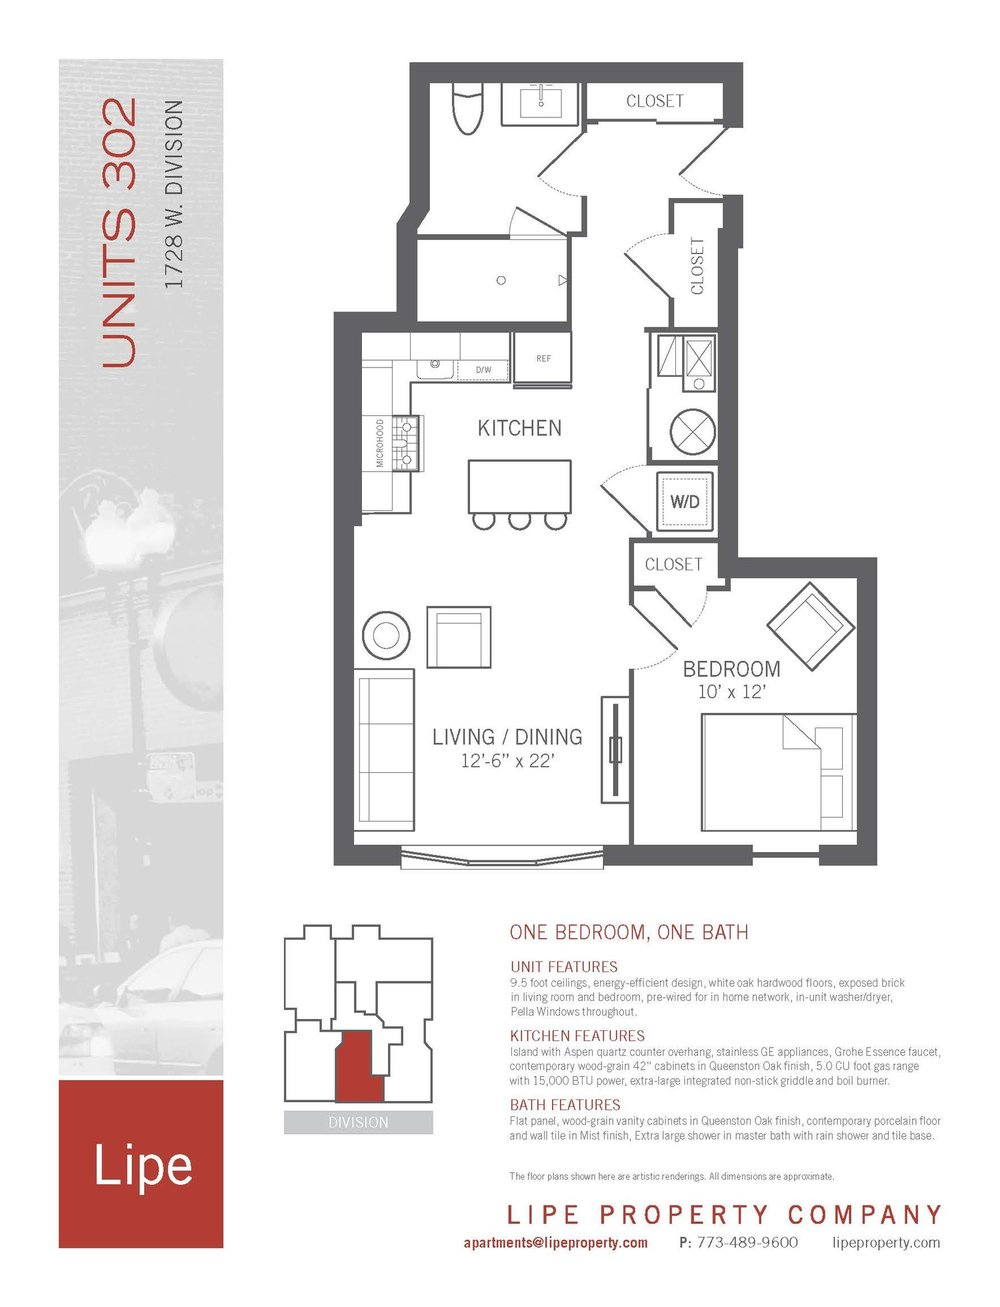 1728-West-Division-302-Floorplan-Chicago-apartment-for-rent.jpg